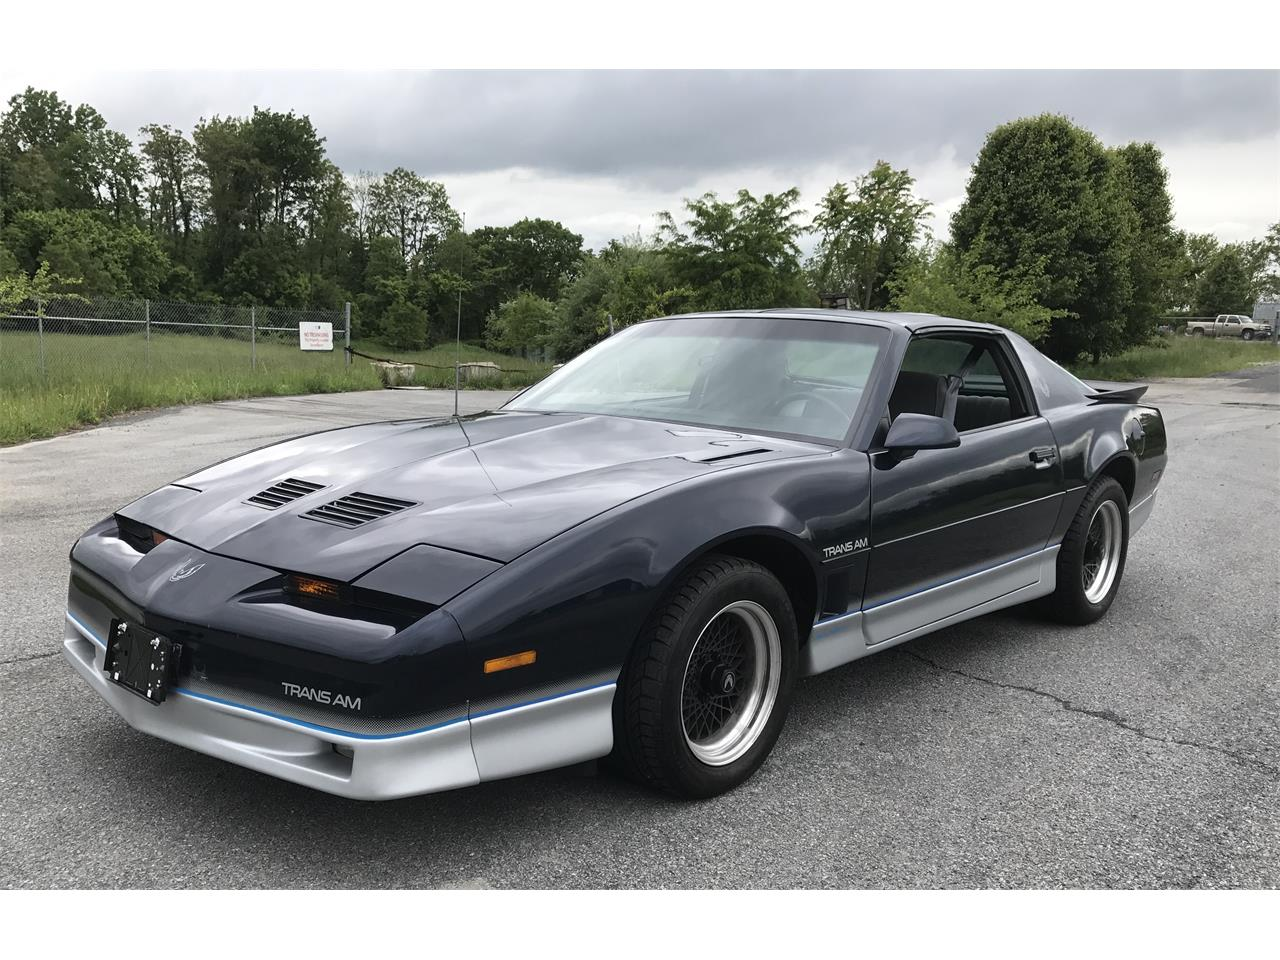 1986 pontiac firebird trans am for sale classiccars com cc 983270 1986 pontiac firebird trans am for sale